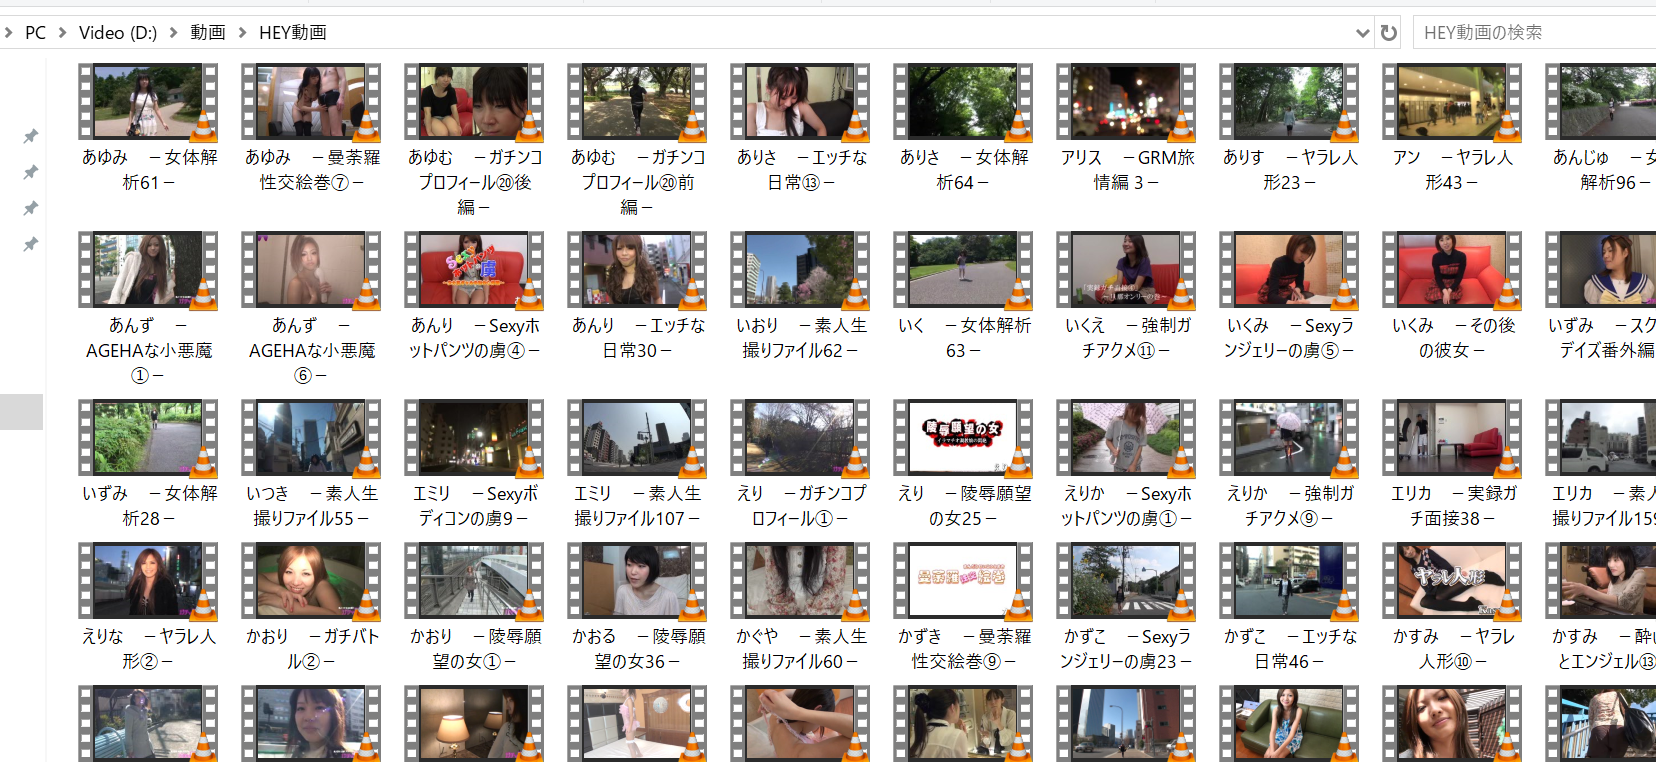 some of the uncensored JAV SEX videos I got from the HEYdouga